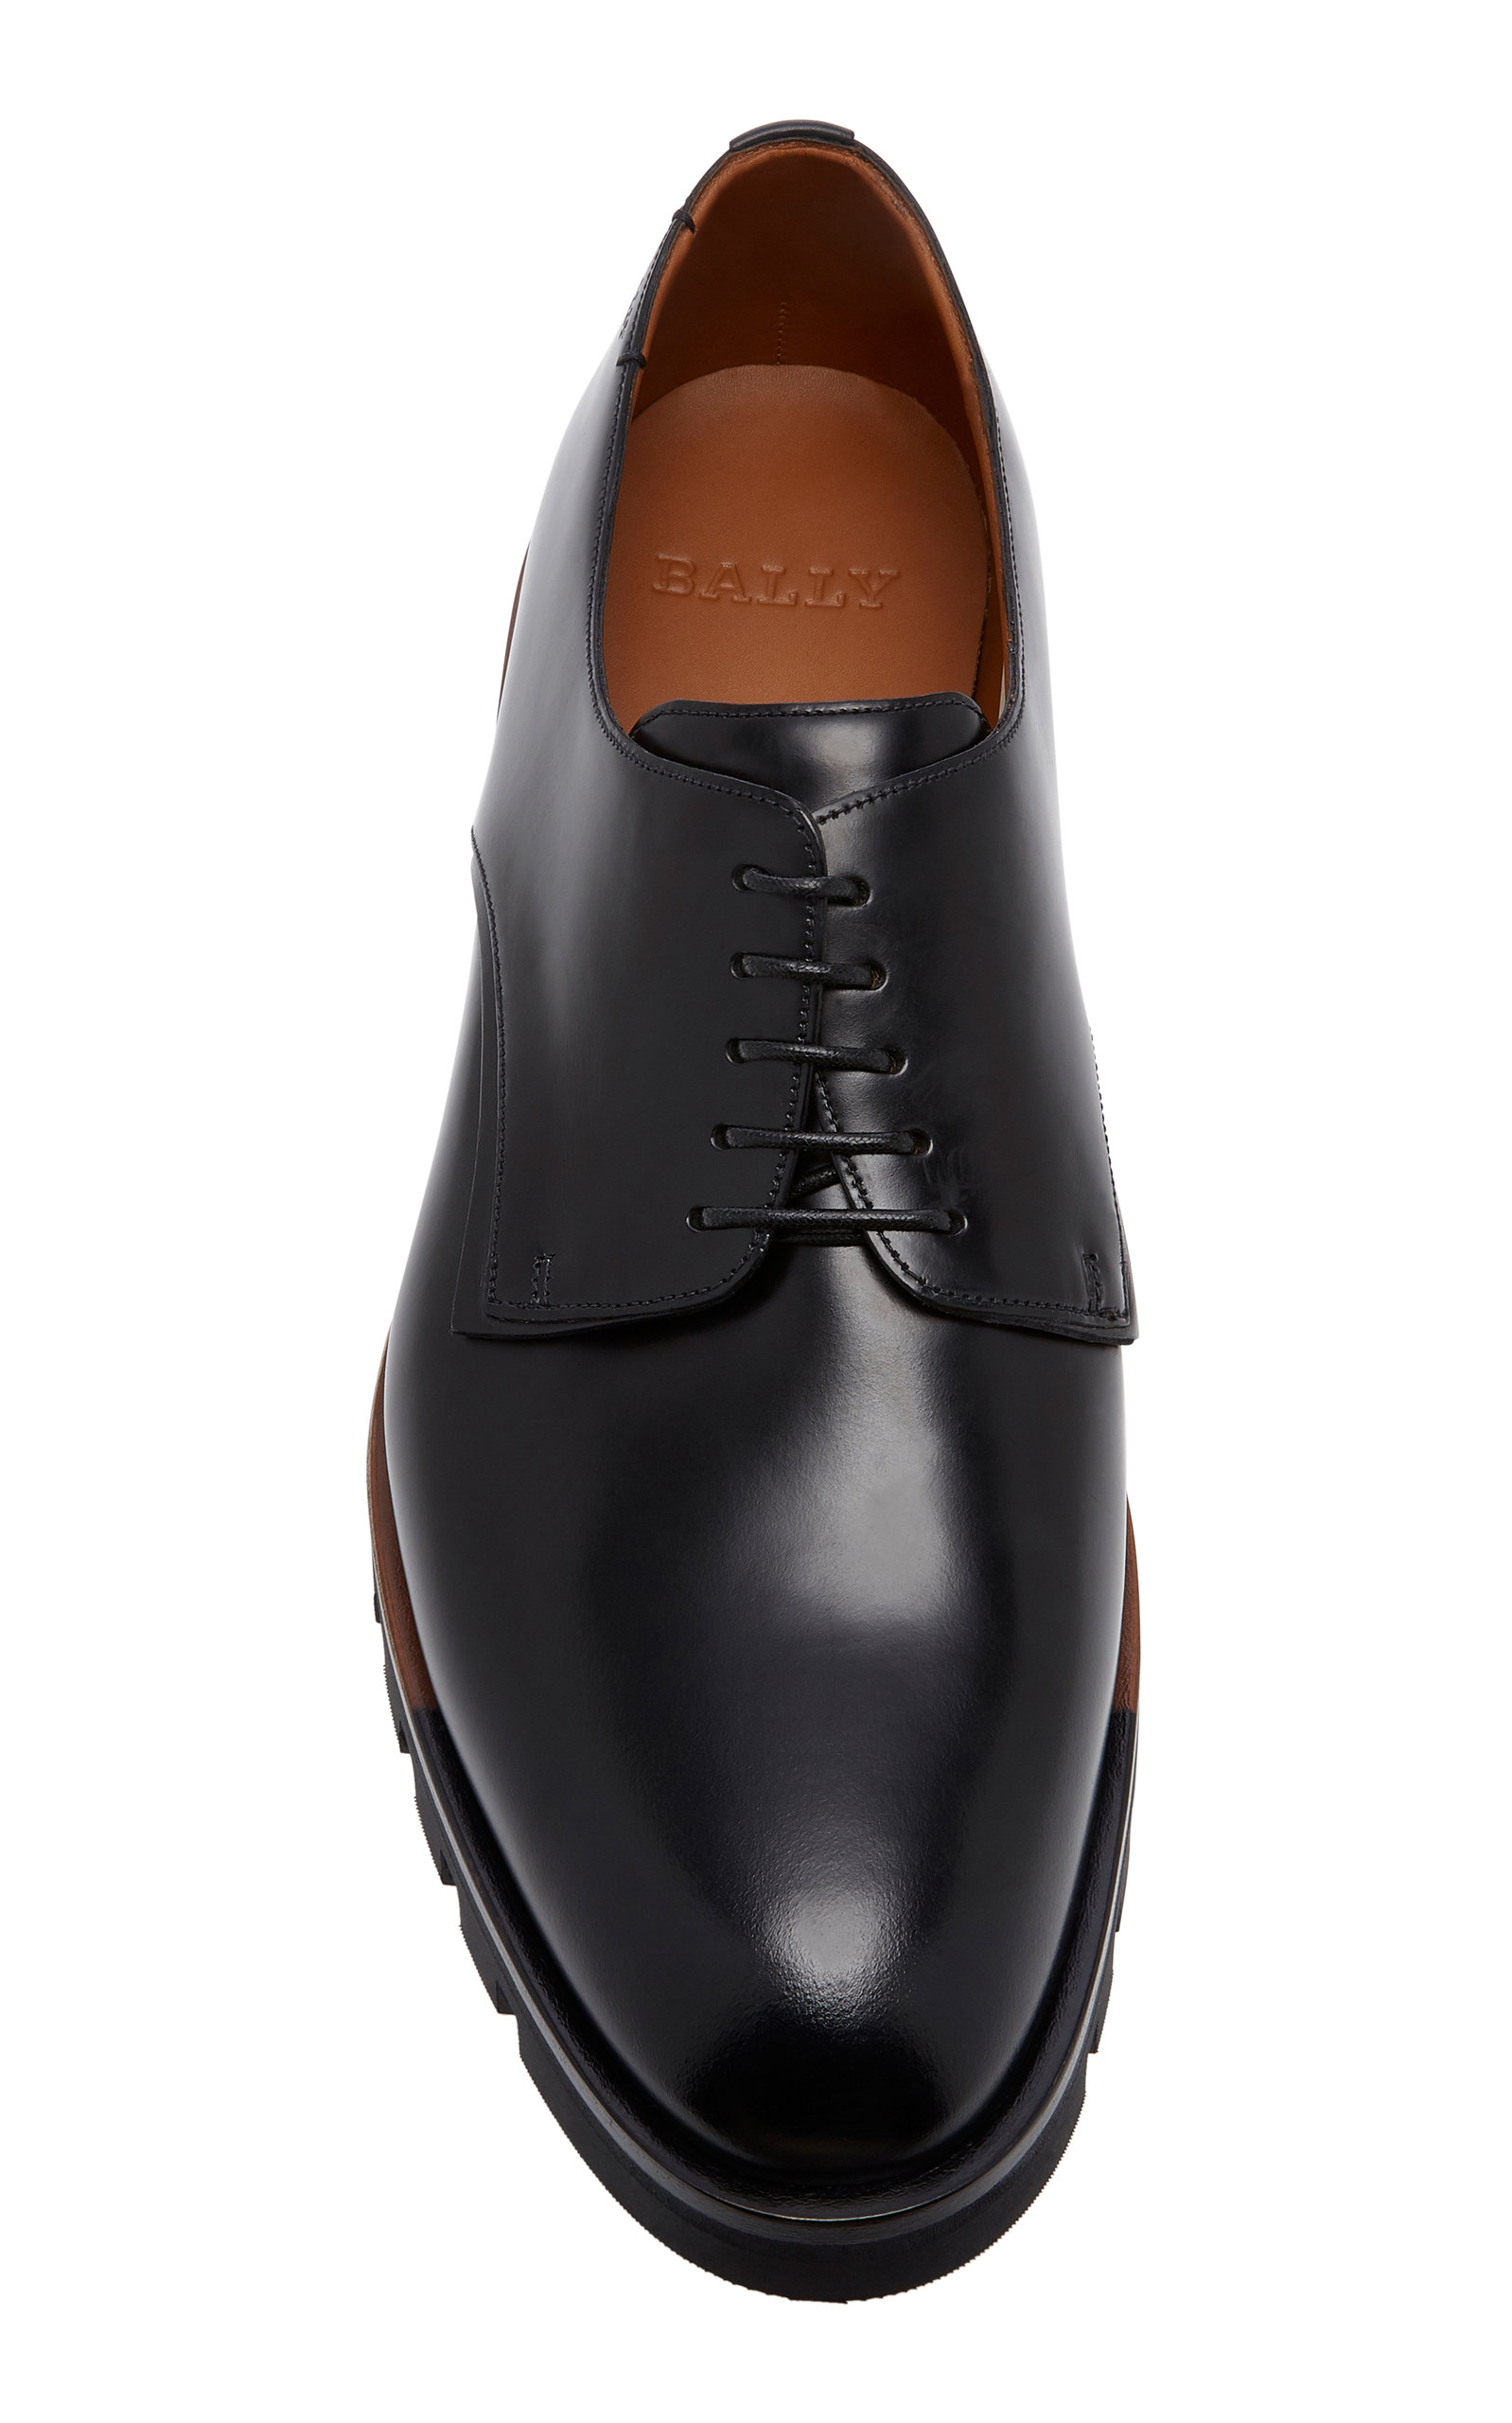 d59fd19bfbc7 Barnis Leather Derby Shoes by Bally